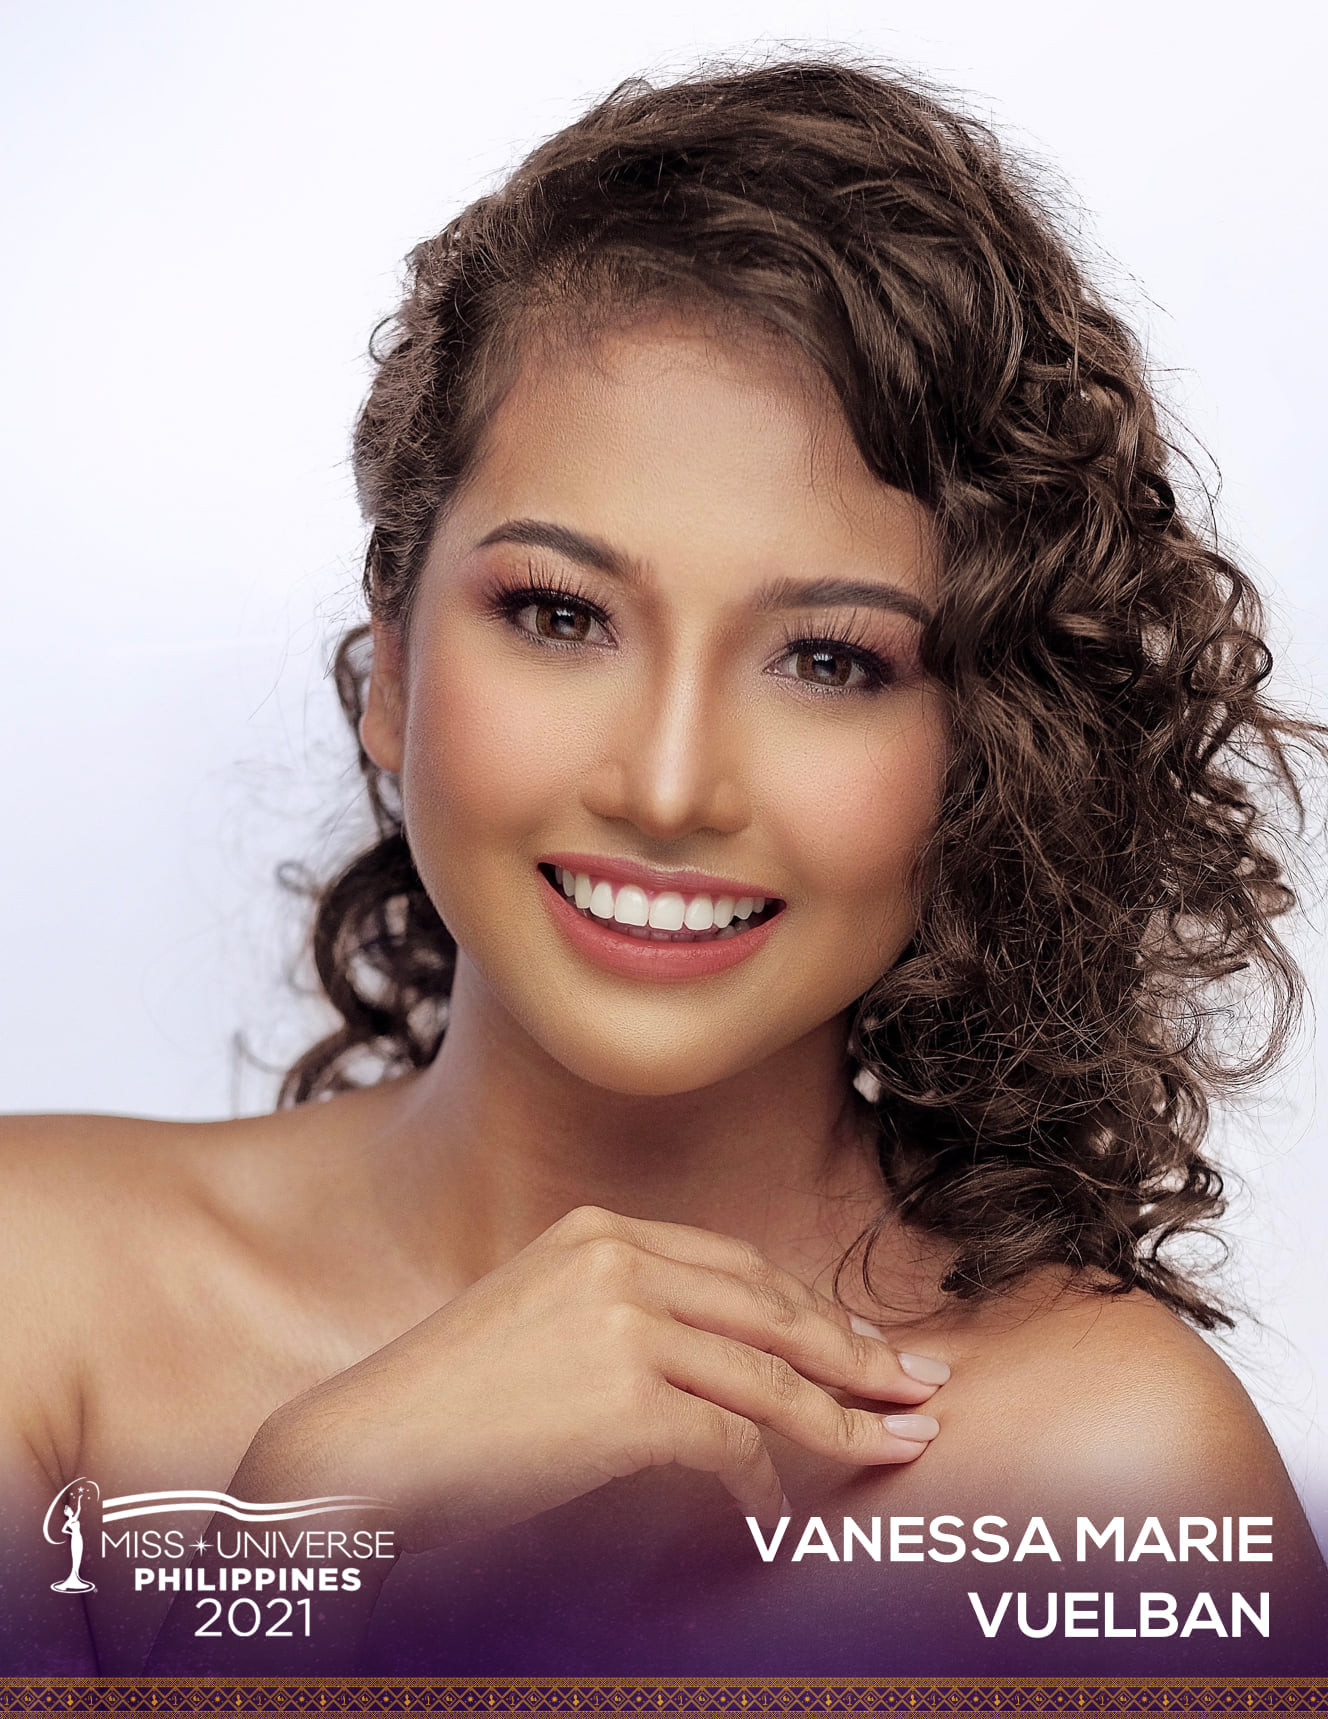 pre-candidatas a miss universe philippines 2021. AlK9Pp